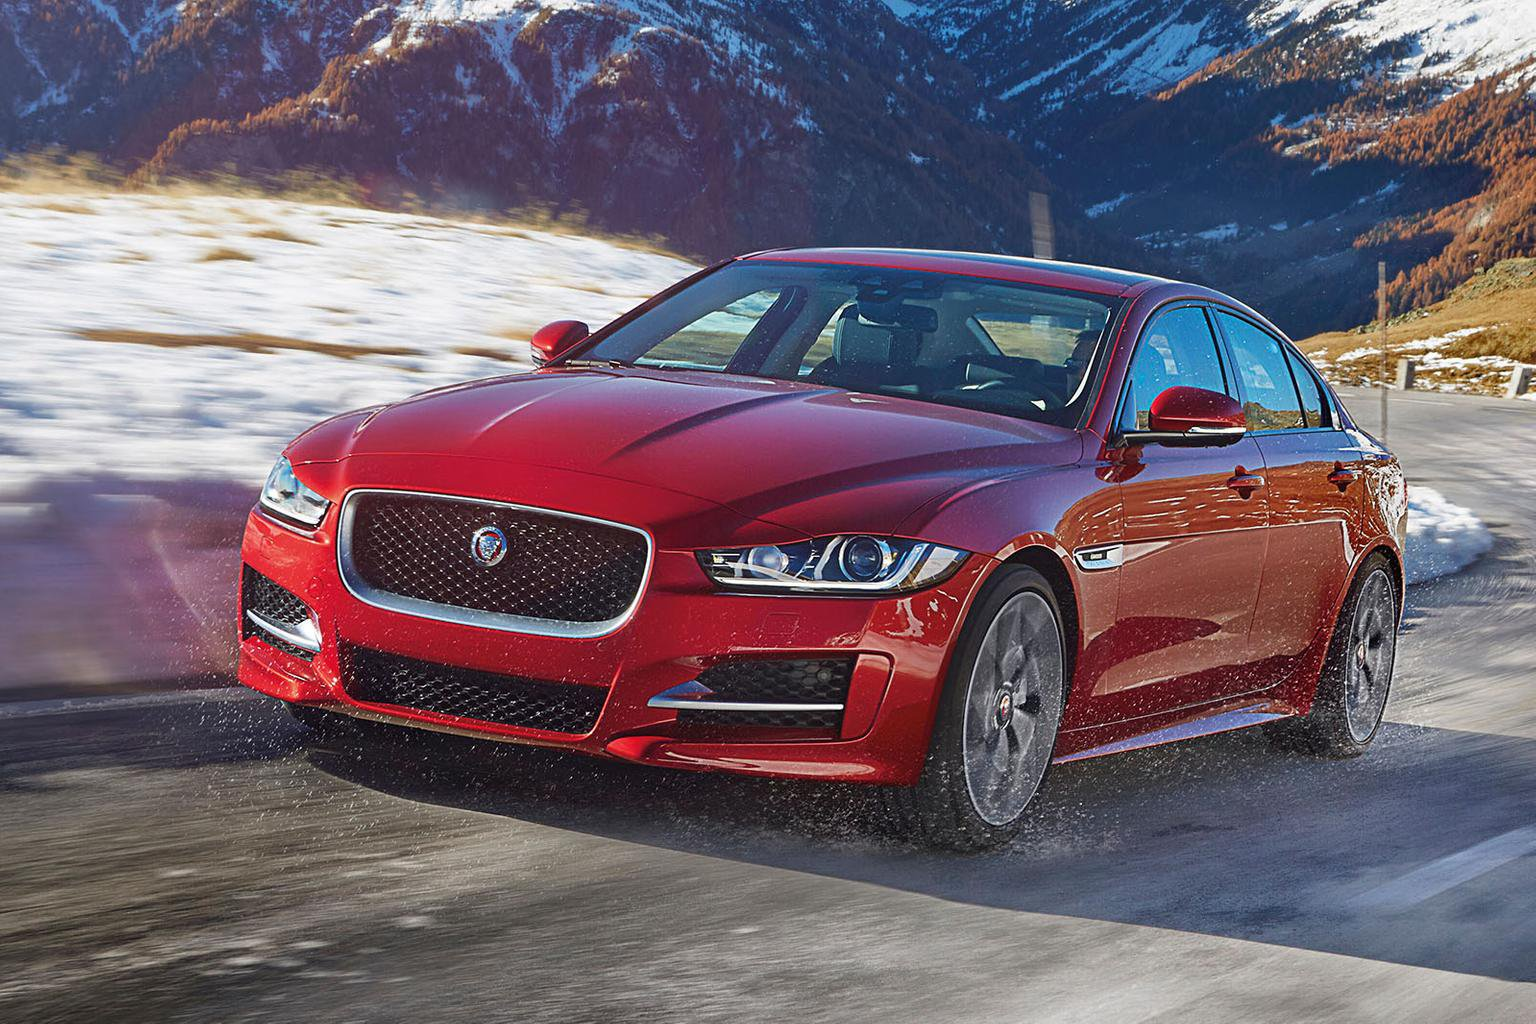 Jaguar XE gets new infotainment options and all-wheel drive